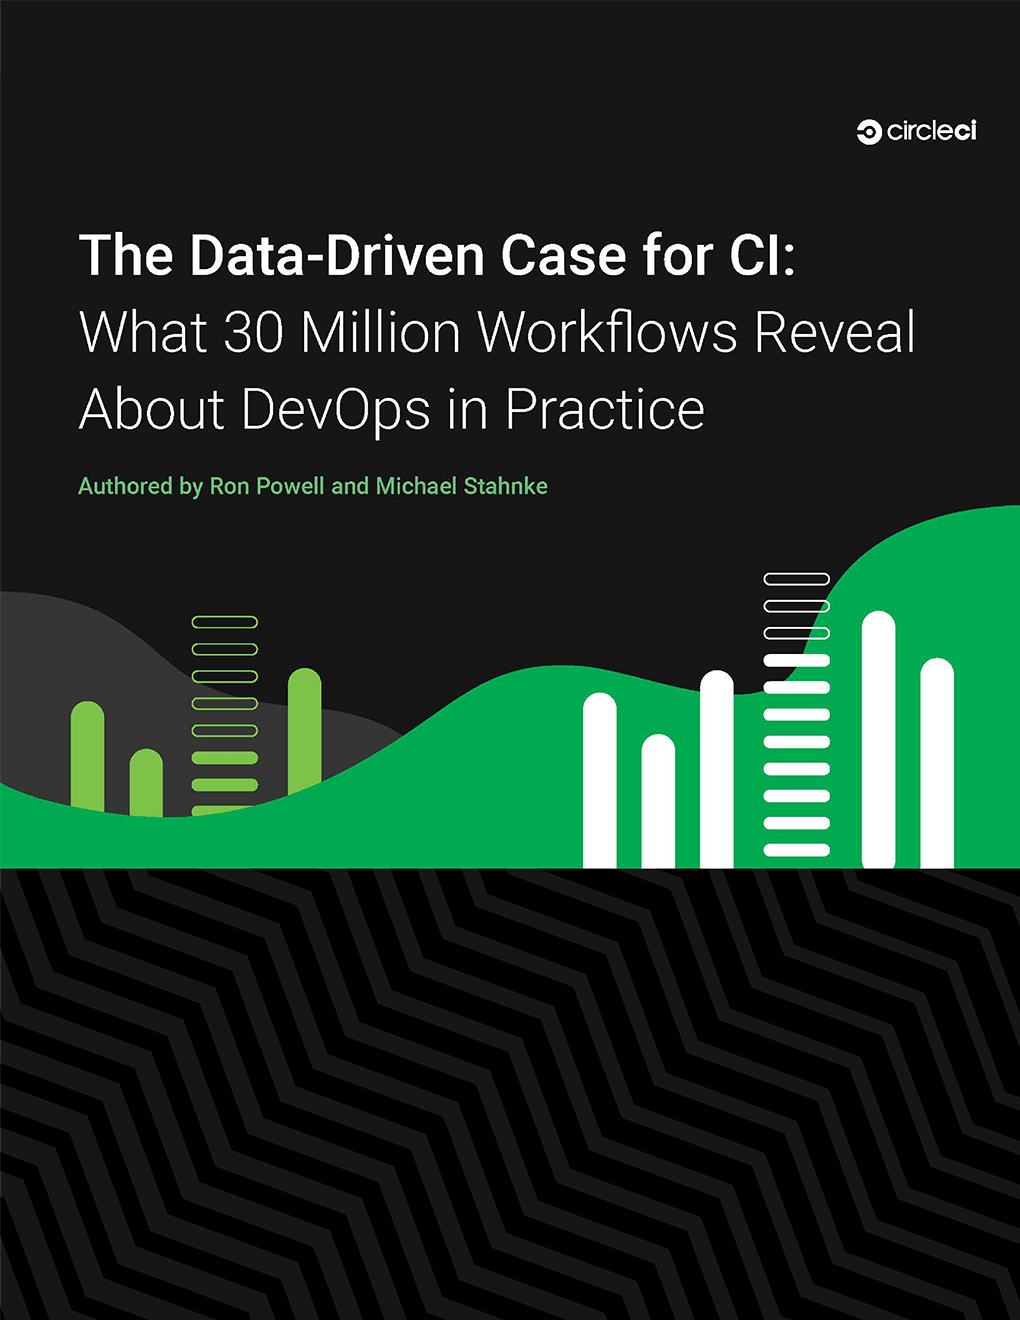 The Data-Driven Case for CI: What 30 Million Workflows Reveal About DevOps in Practice